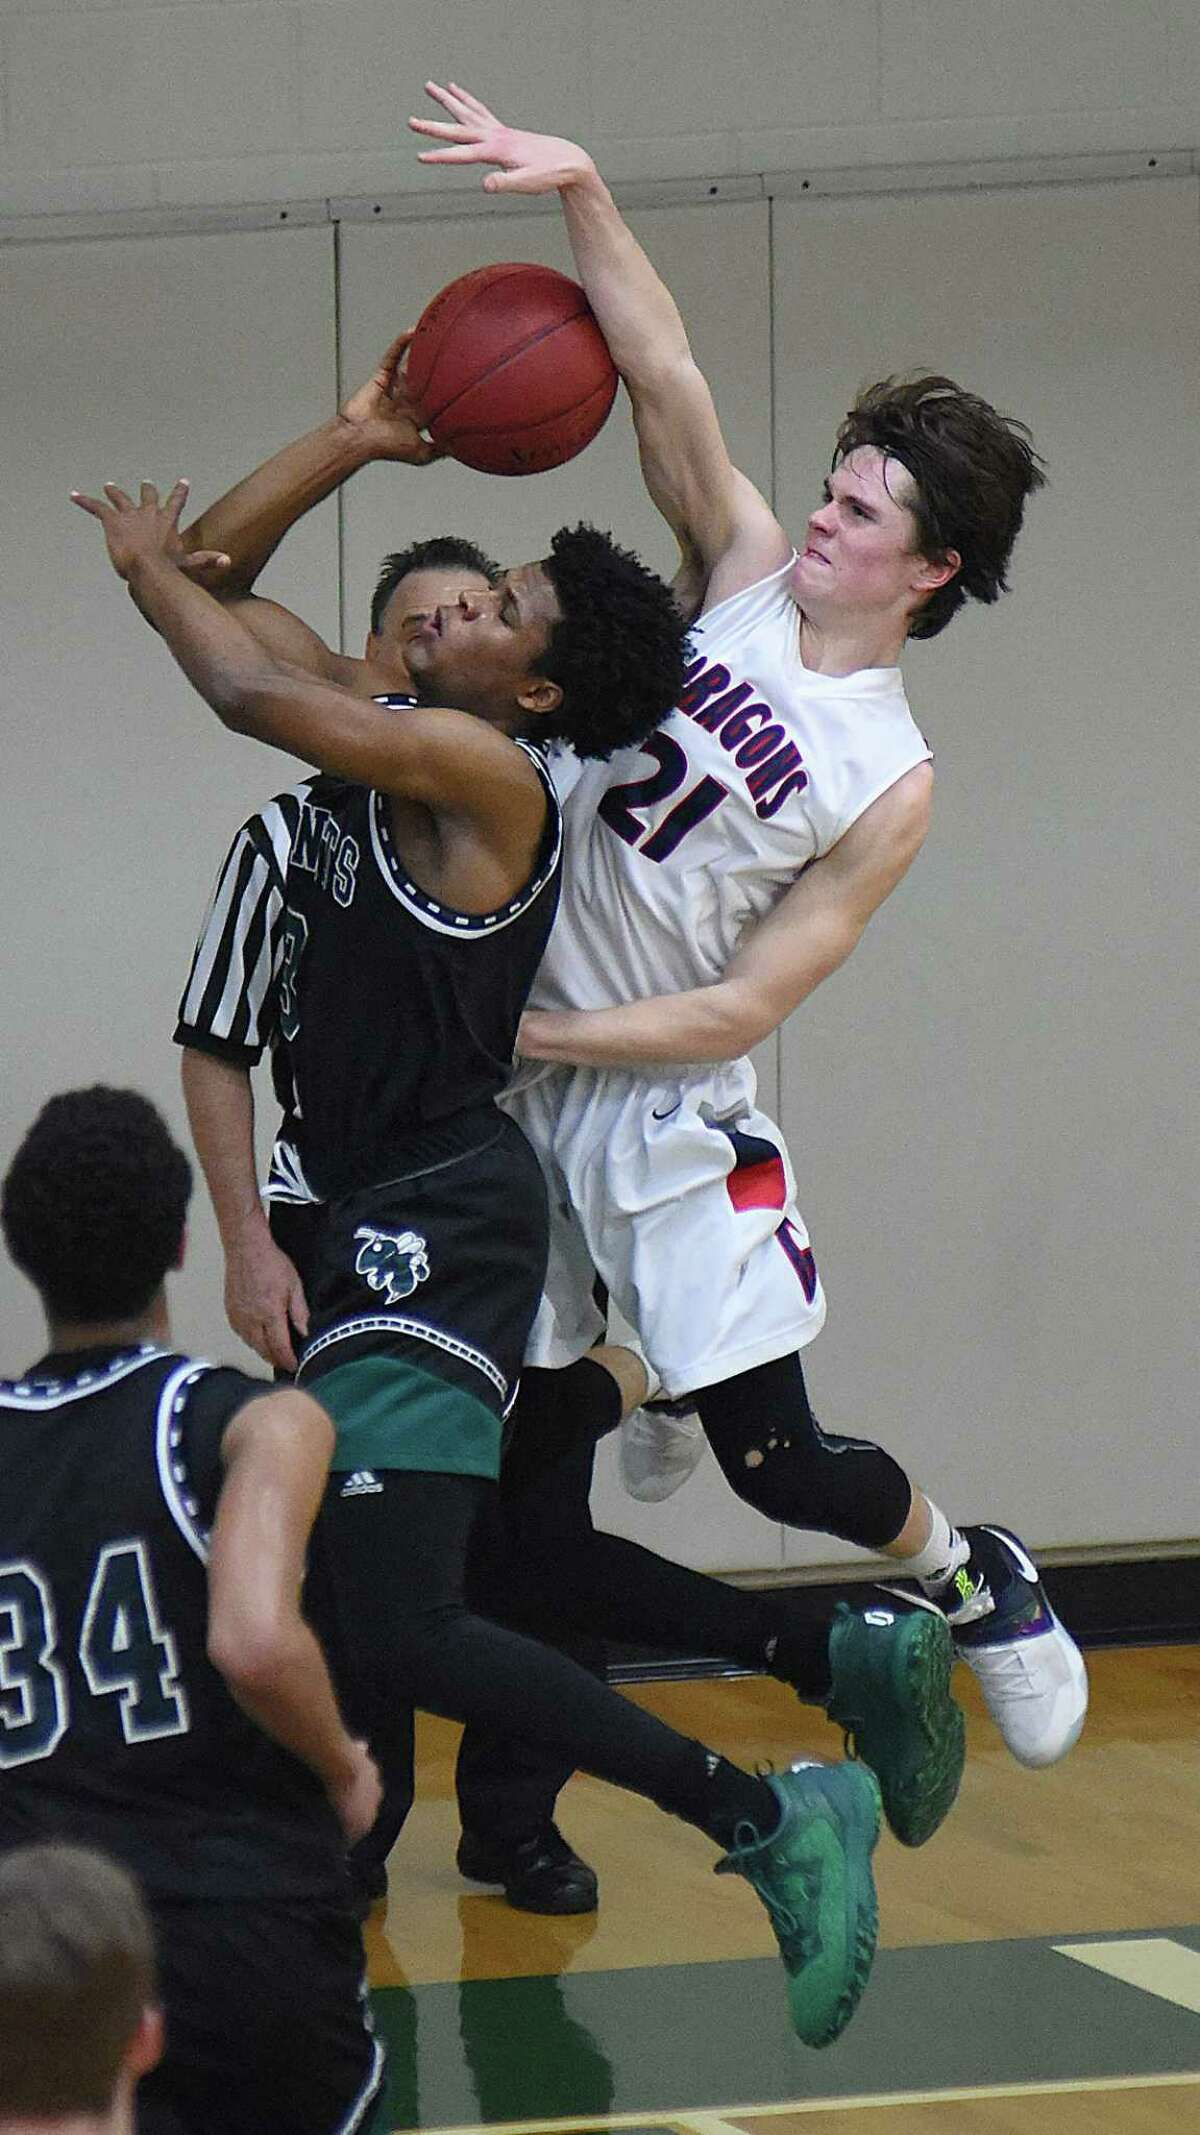 Greens Farms Academy's Bennett Close, right, fouls Hamden Hall's TJ Rountree during the second half of Thursday's FAA boys basketball semifinal.